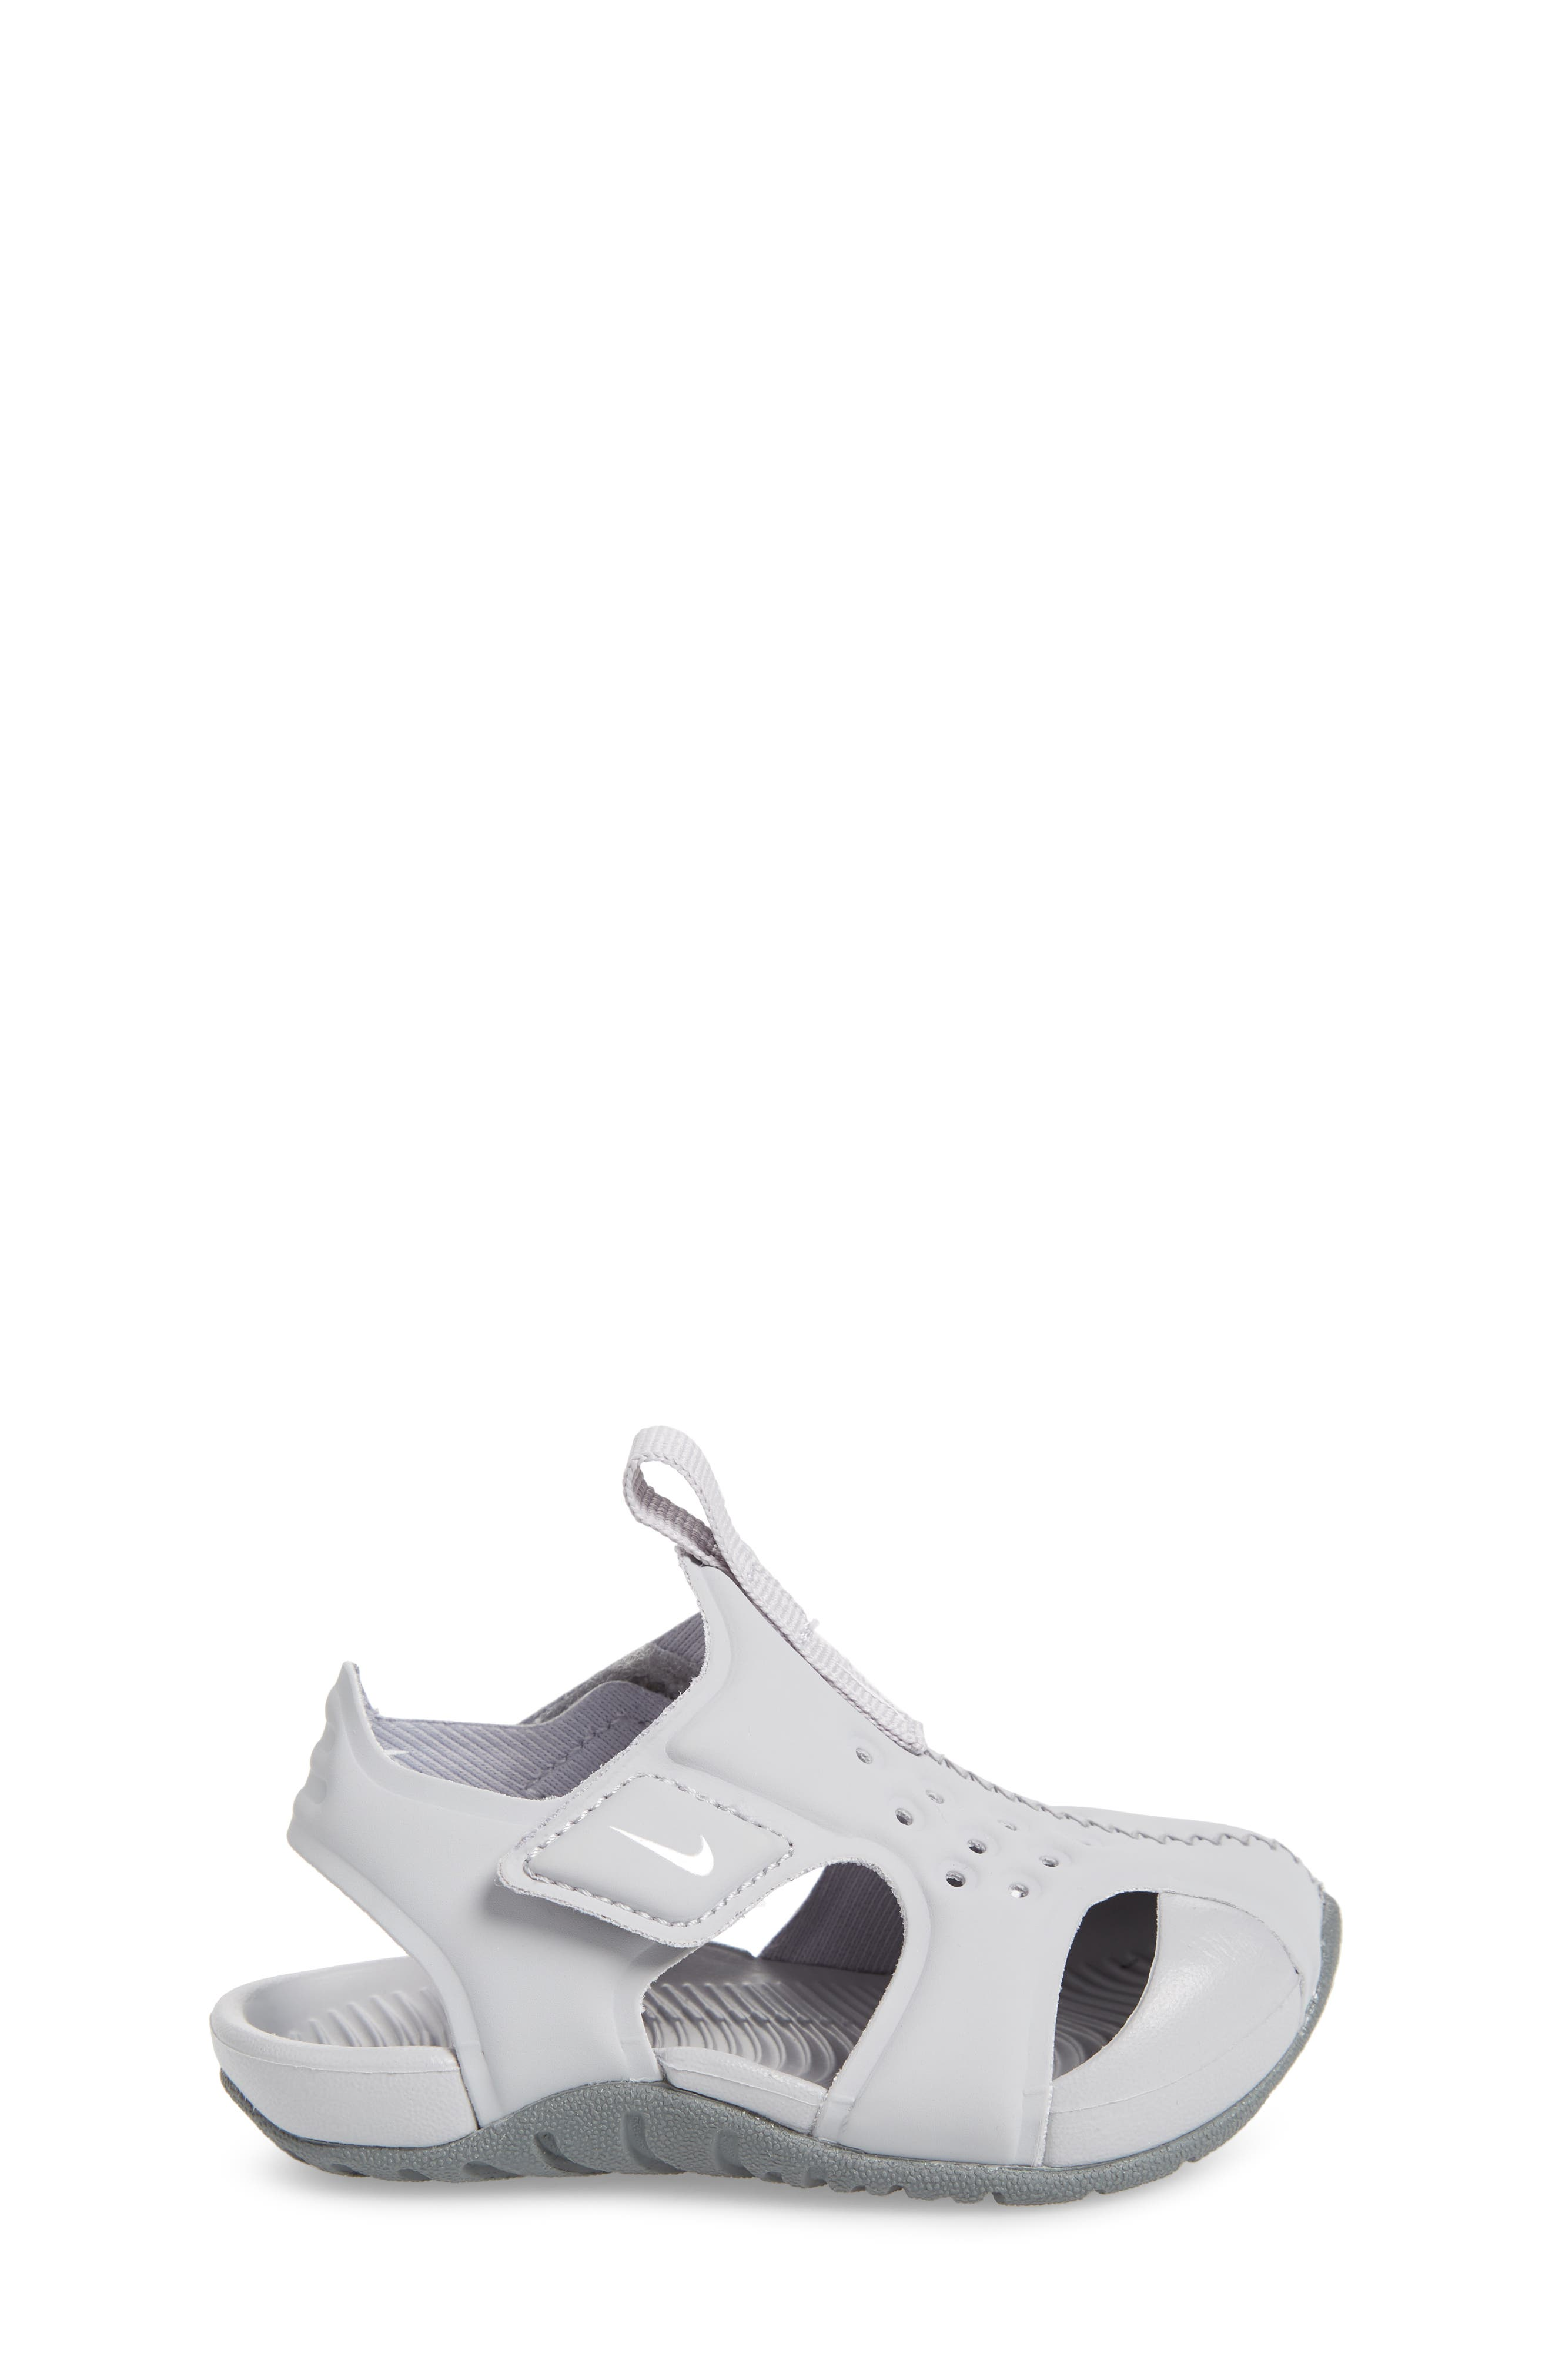 Sunray Protect 2 Sandal,                             Alternate thumbnail 3, color,                             WHITE/ WOLF GREY